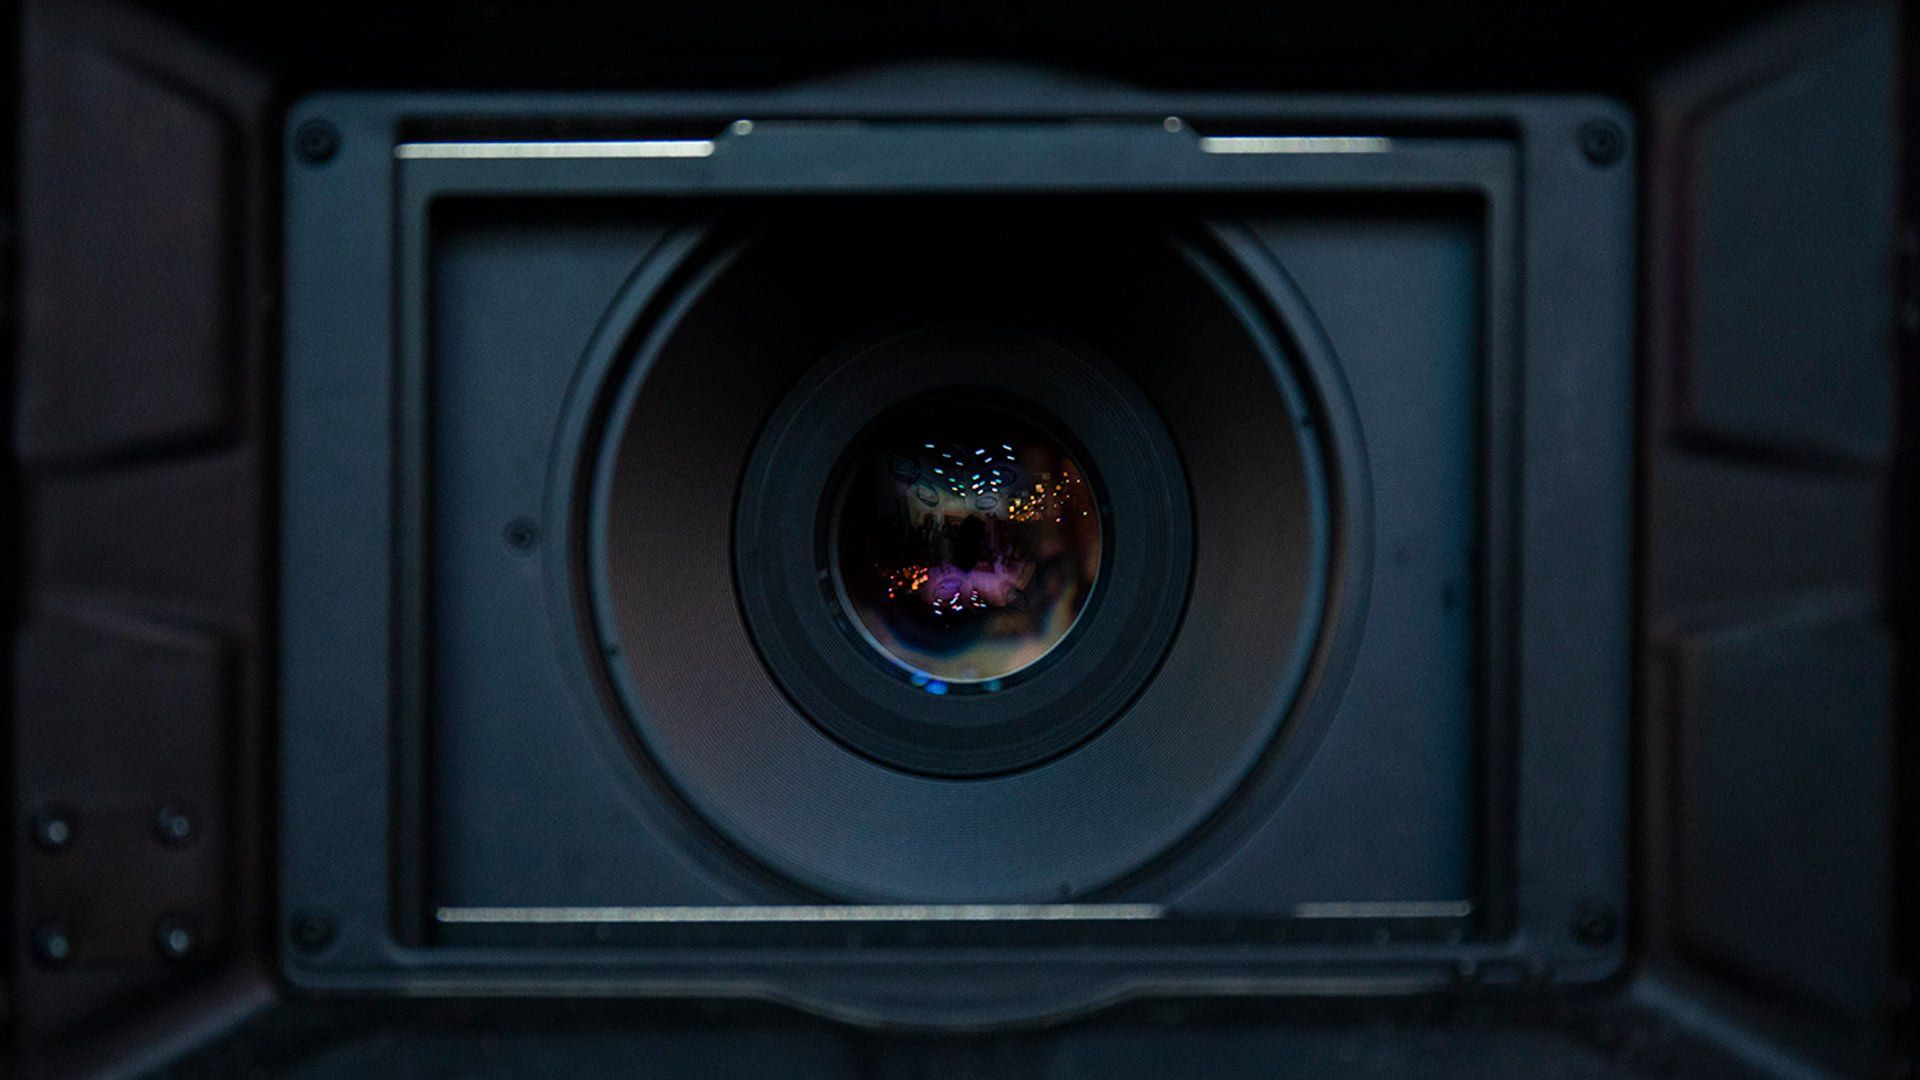 Looking down the barrel of a lens